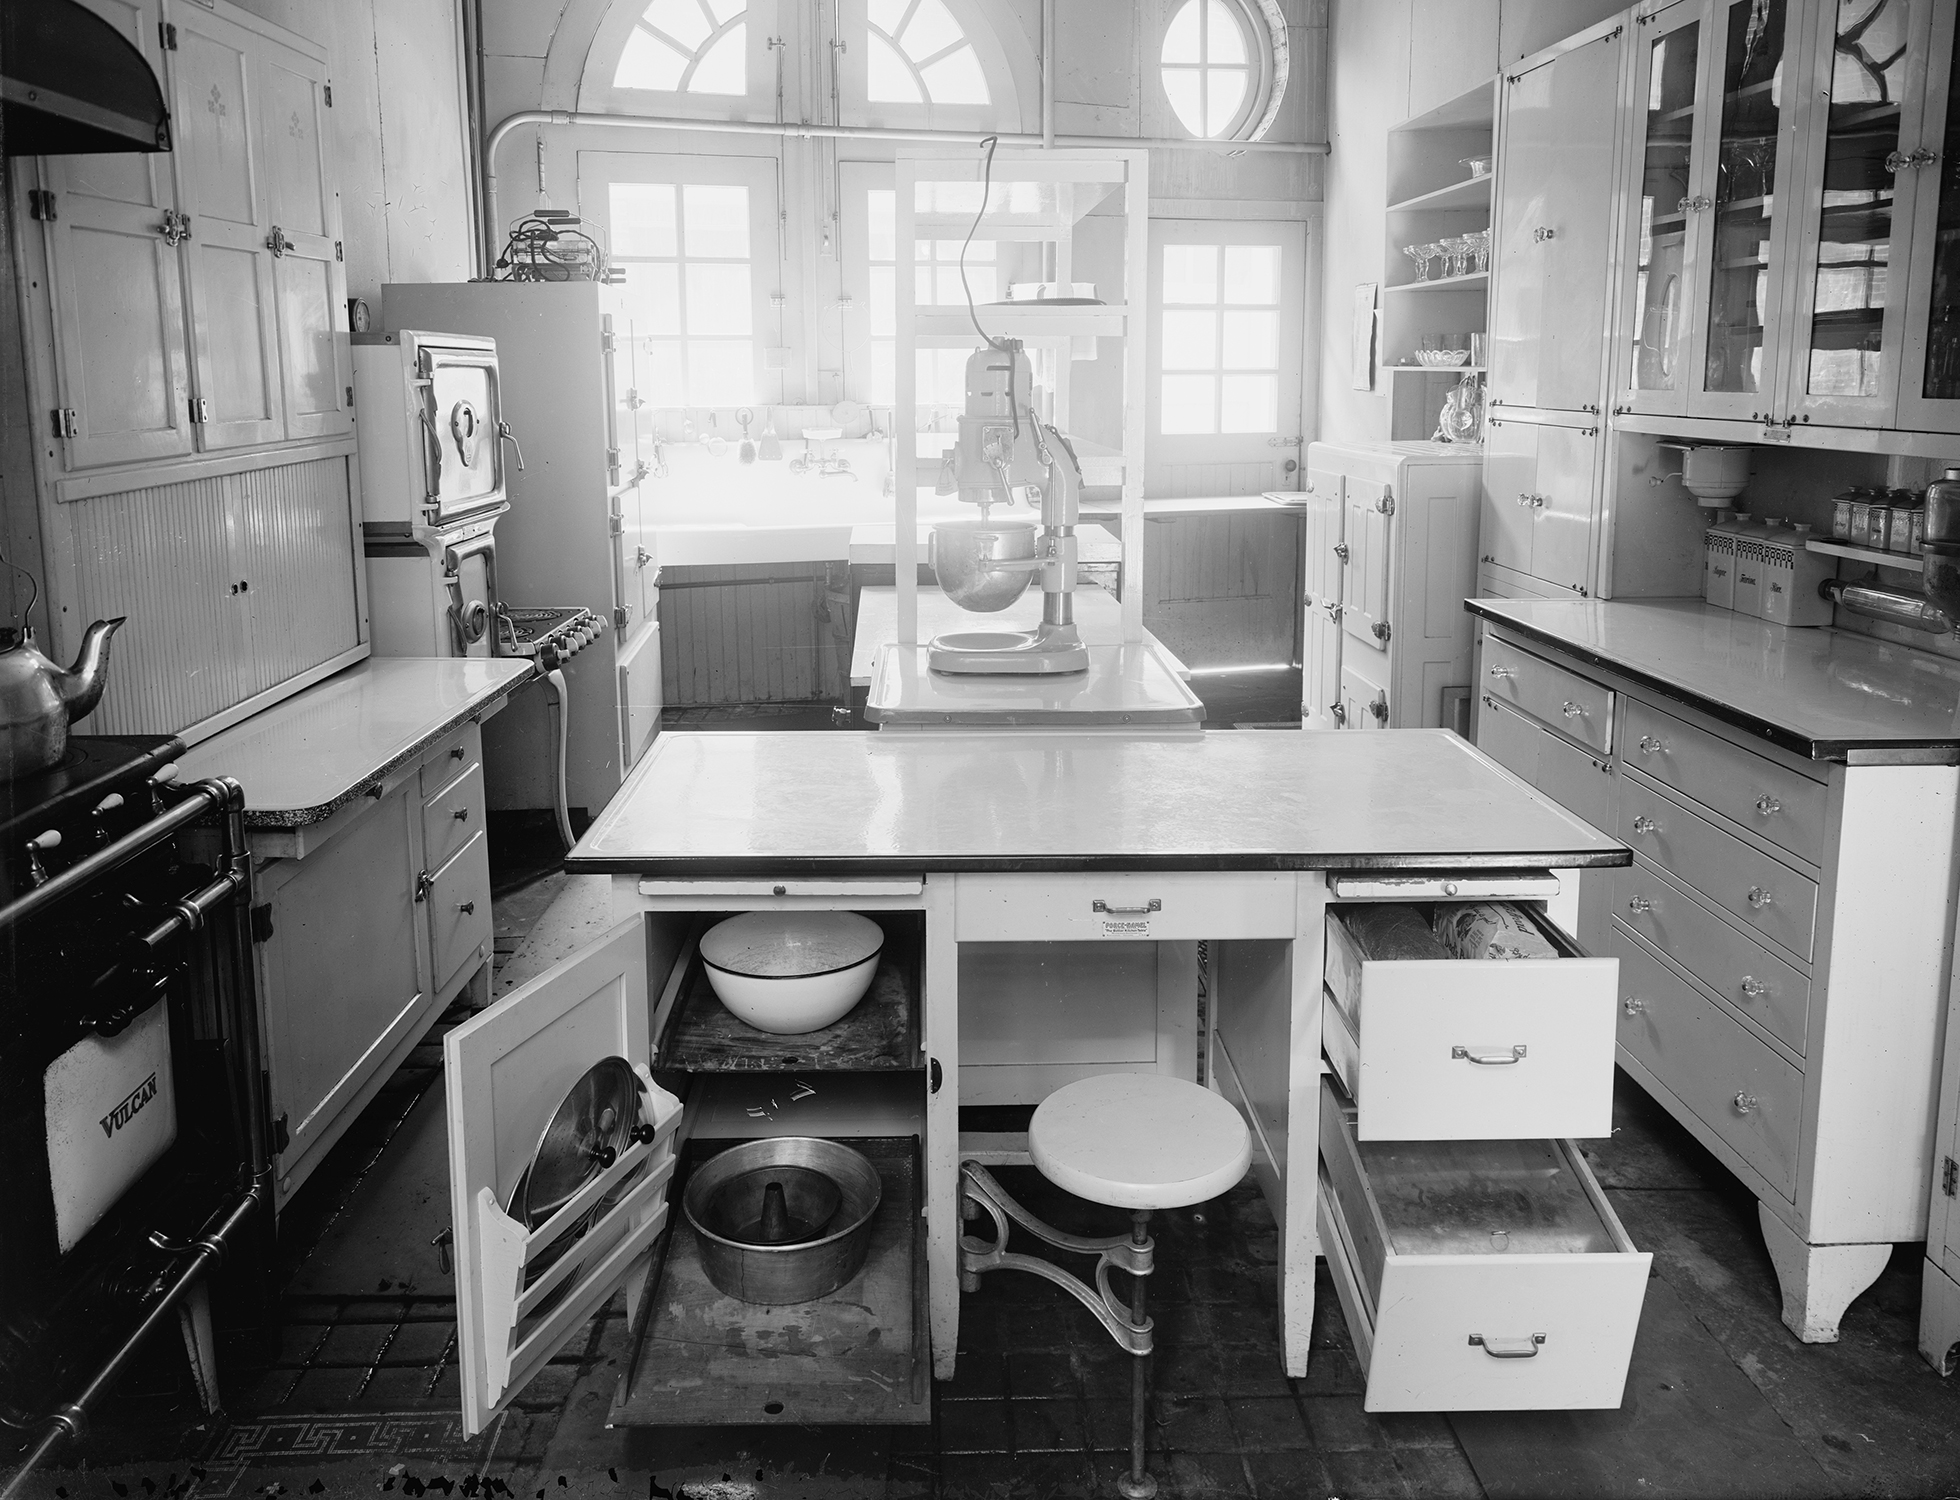 Vintage white kitchen image from Library of Congress